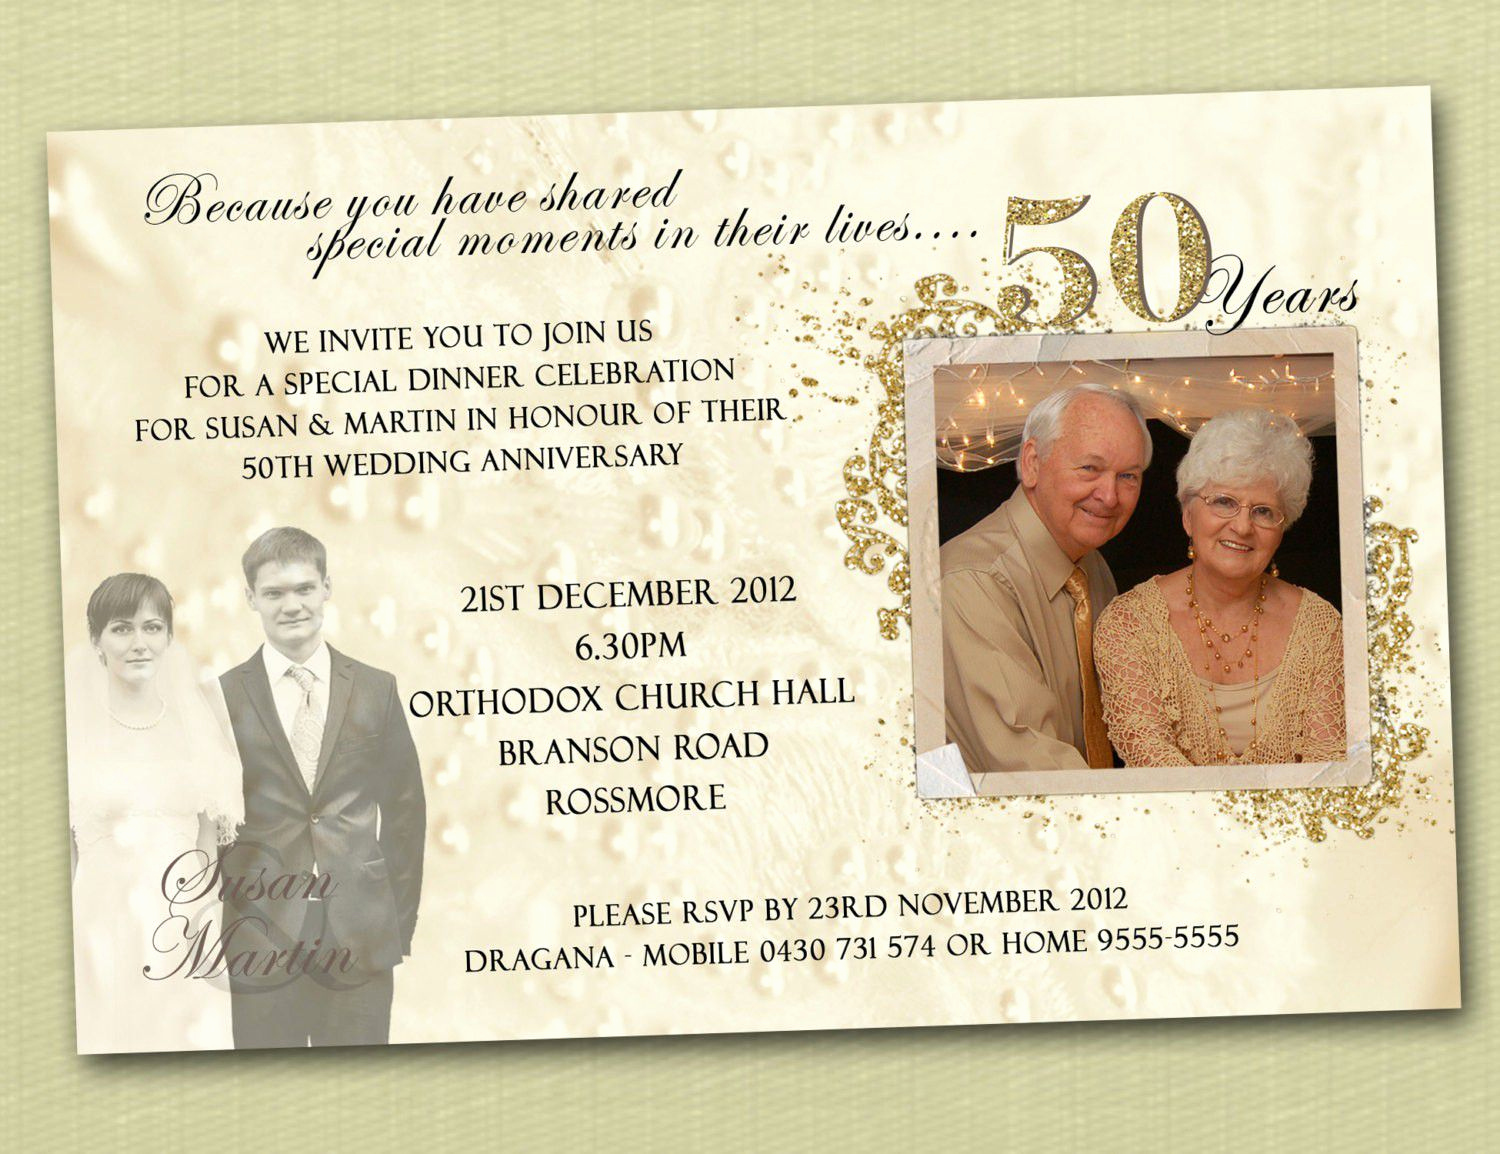 50th Anniversary Invitation Ideas Lovely Anniversary Invitations Ideas 25th Anniversary